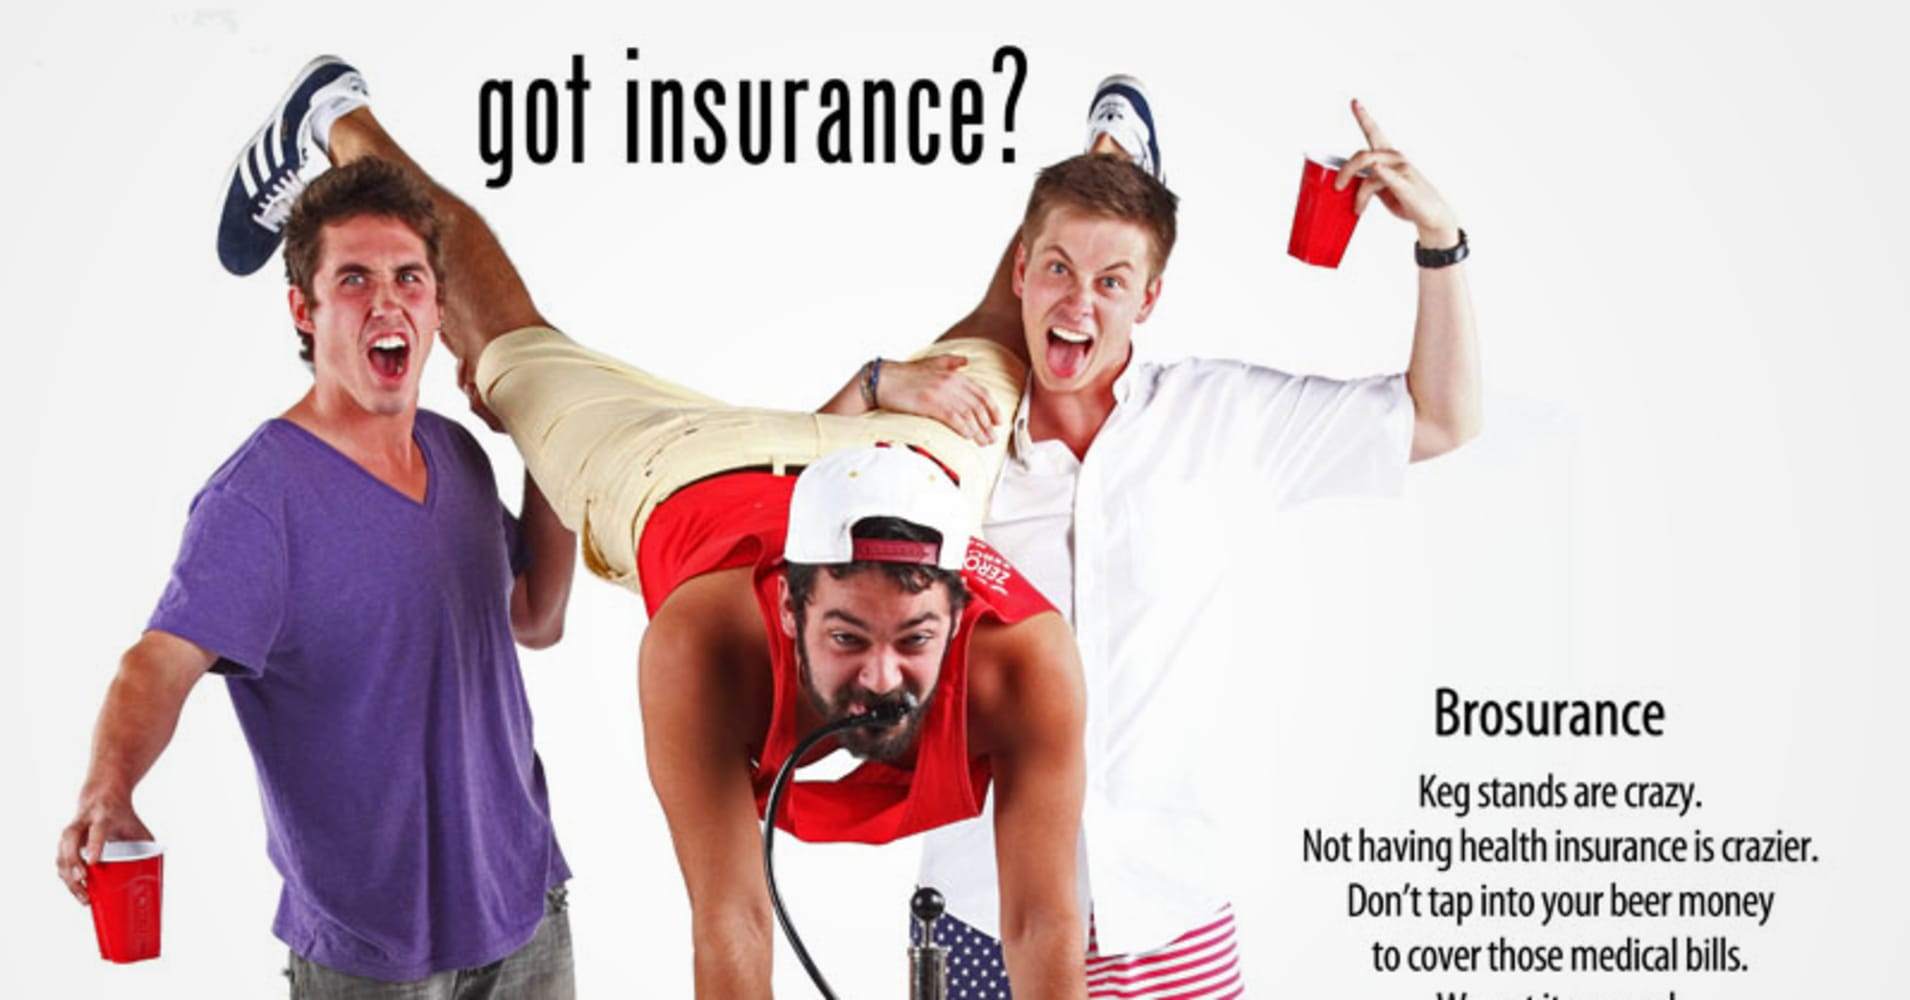 39 brosurance 39 ads go viral but will young men buy obamacare for Spiegel young money etf